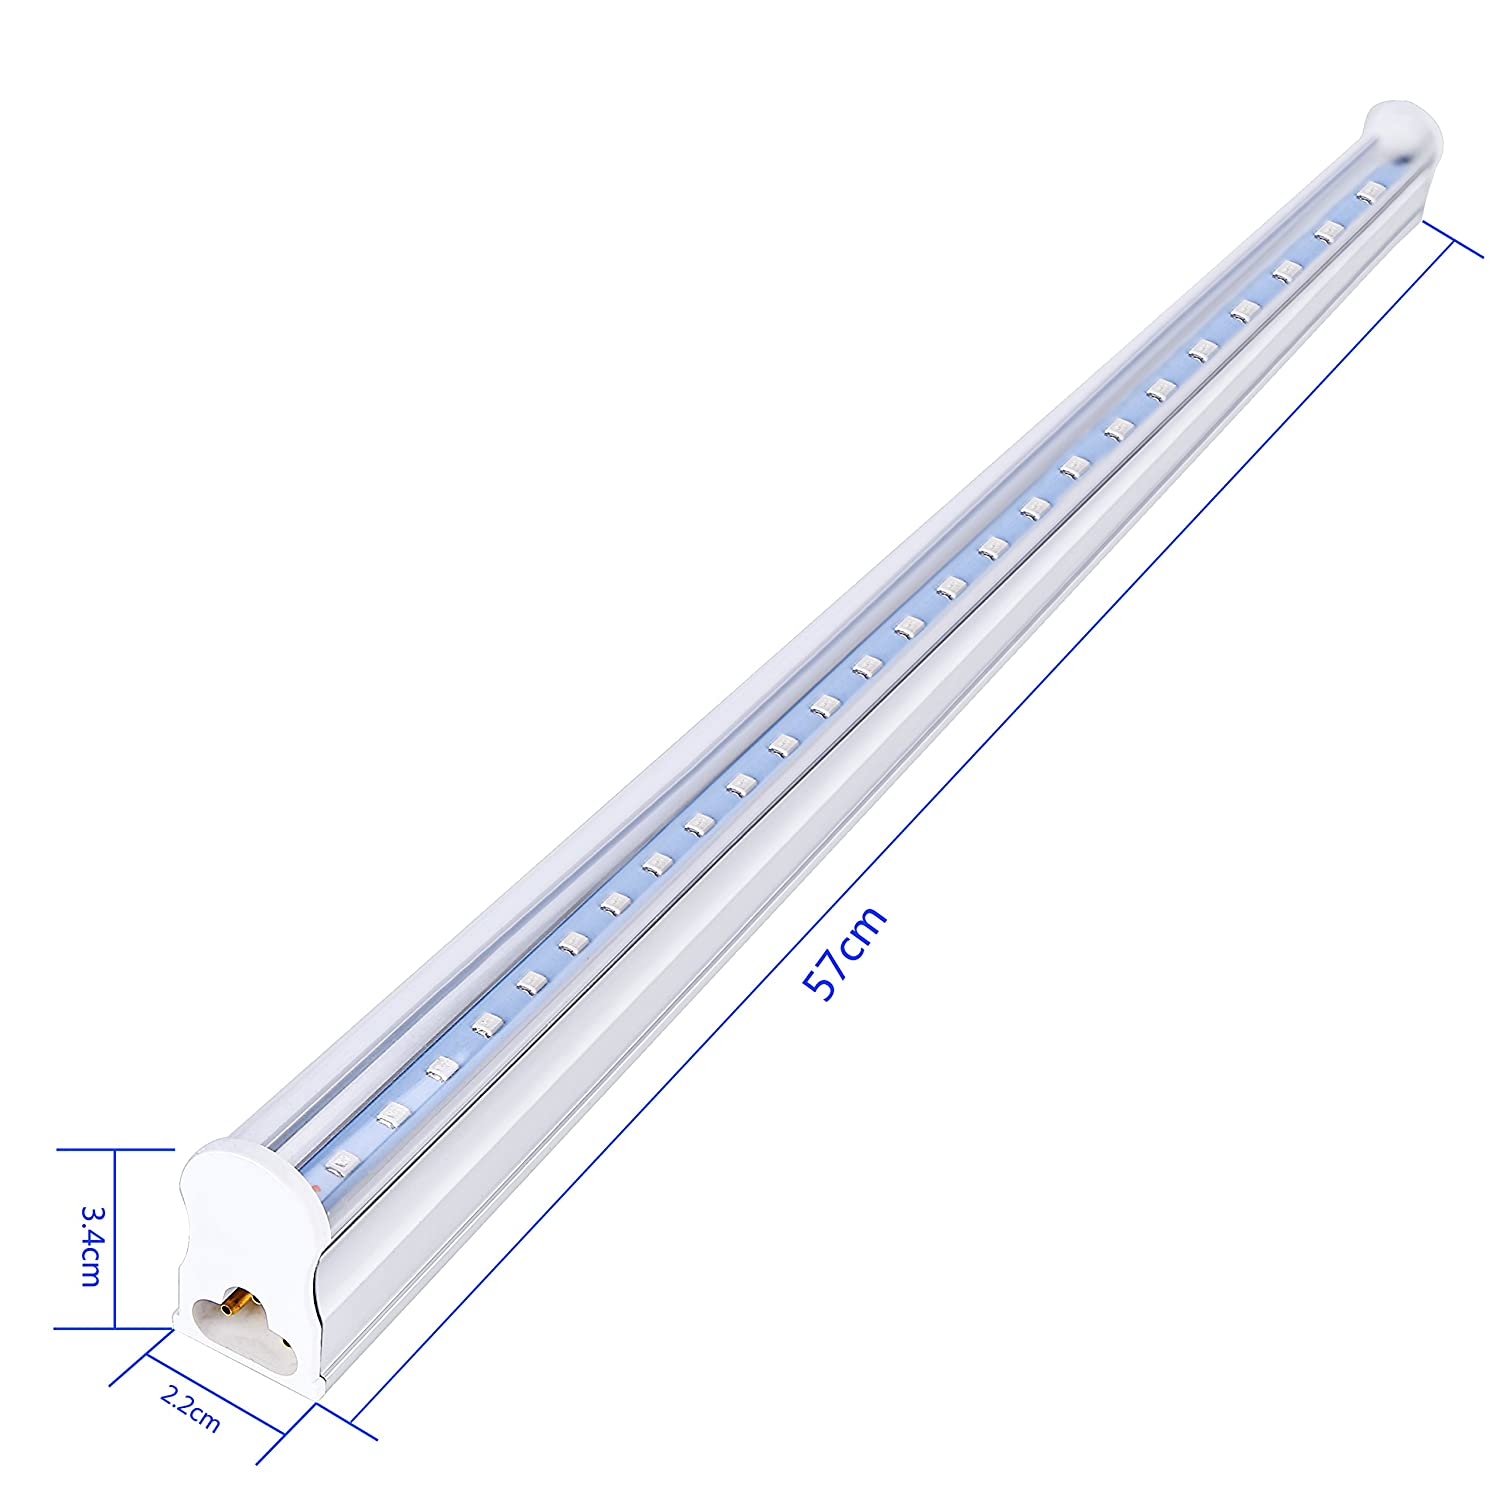 UV LED Black Light Bar Fixture 20W 4ft,T5 Integrated Bulb Tube Lamp,Fluorescent LED Bar Light for Blacklight Poster and Party with ON//Off Switch,4-Pack